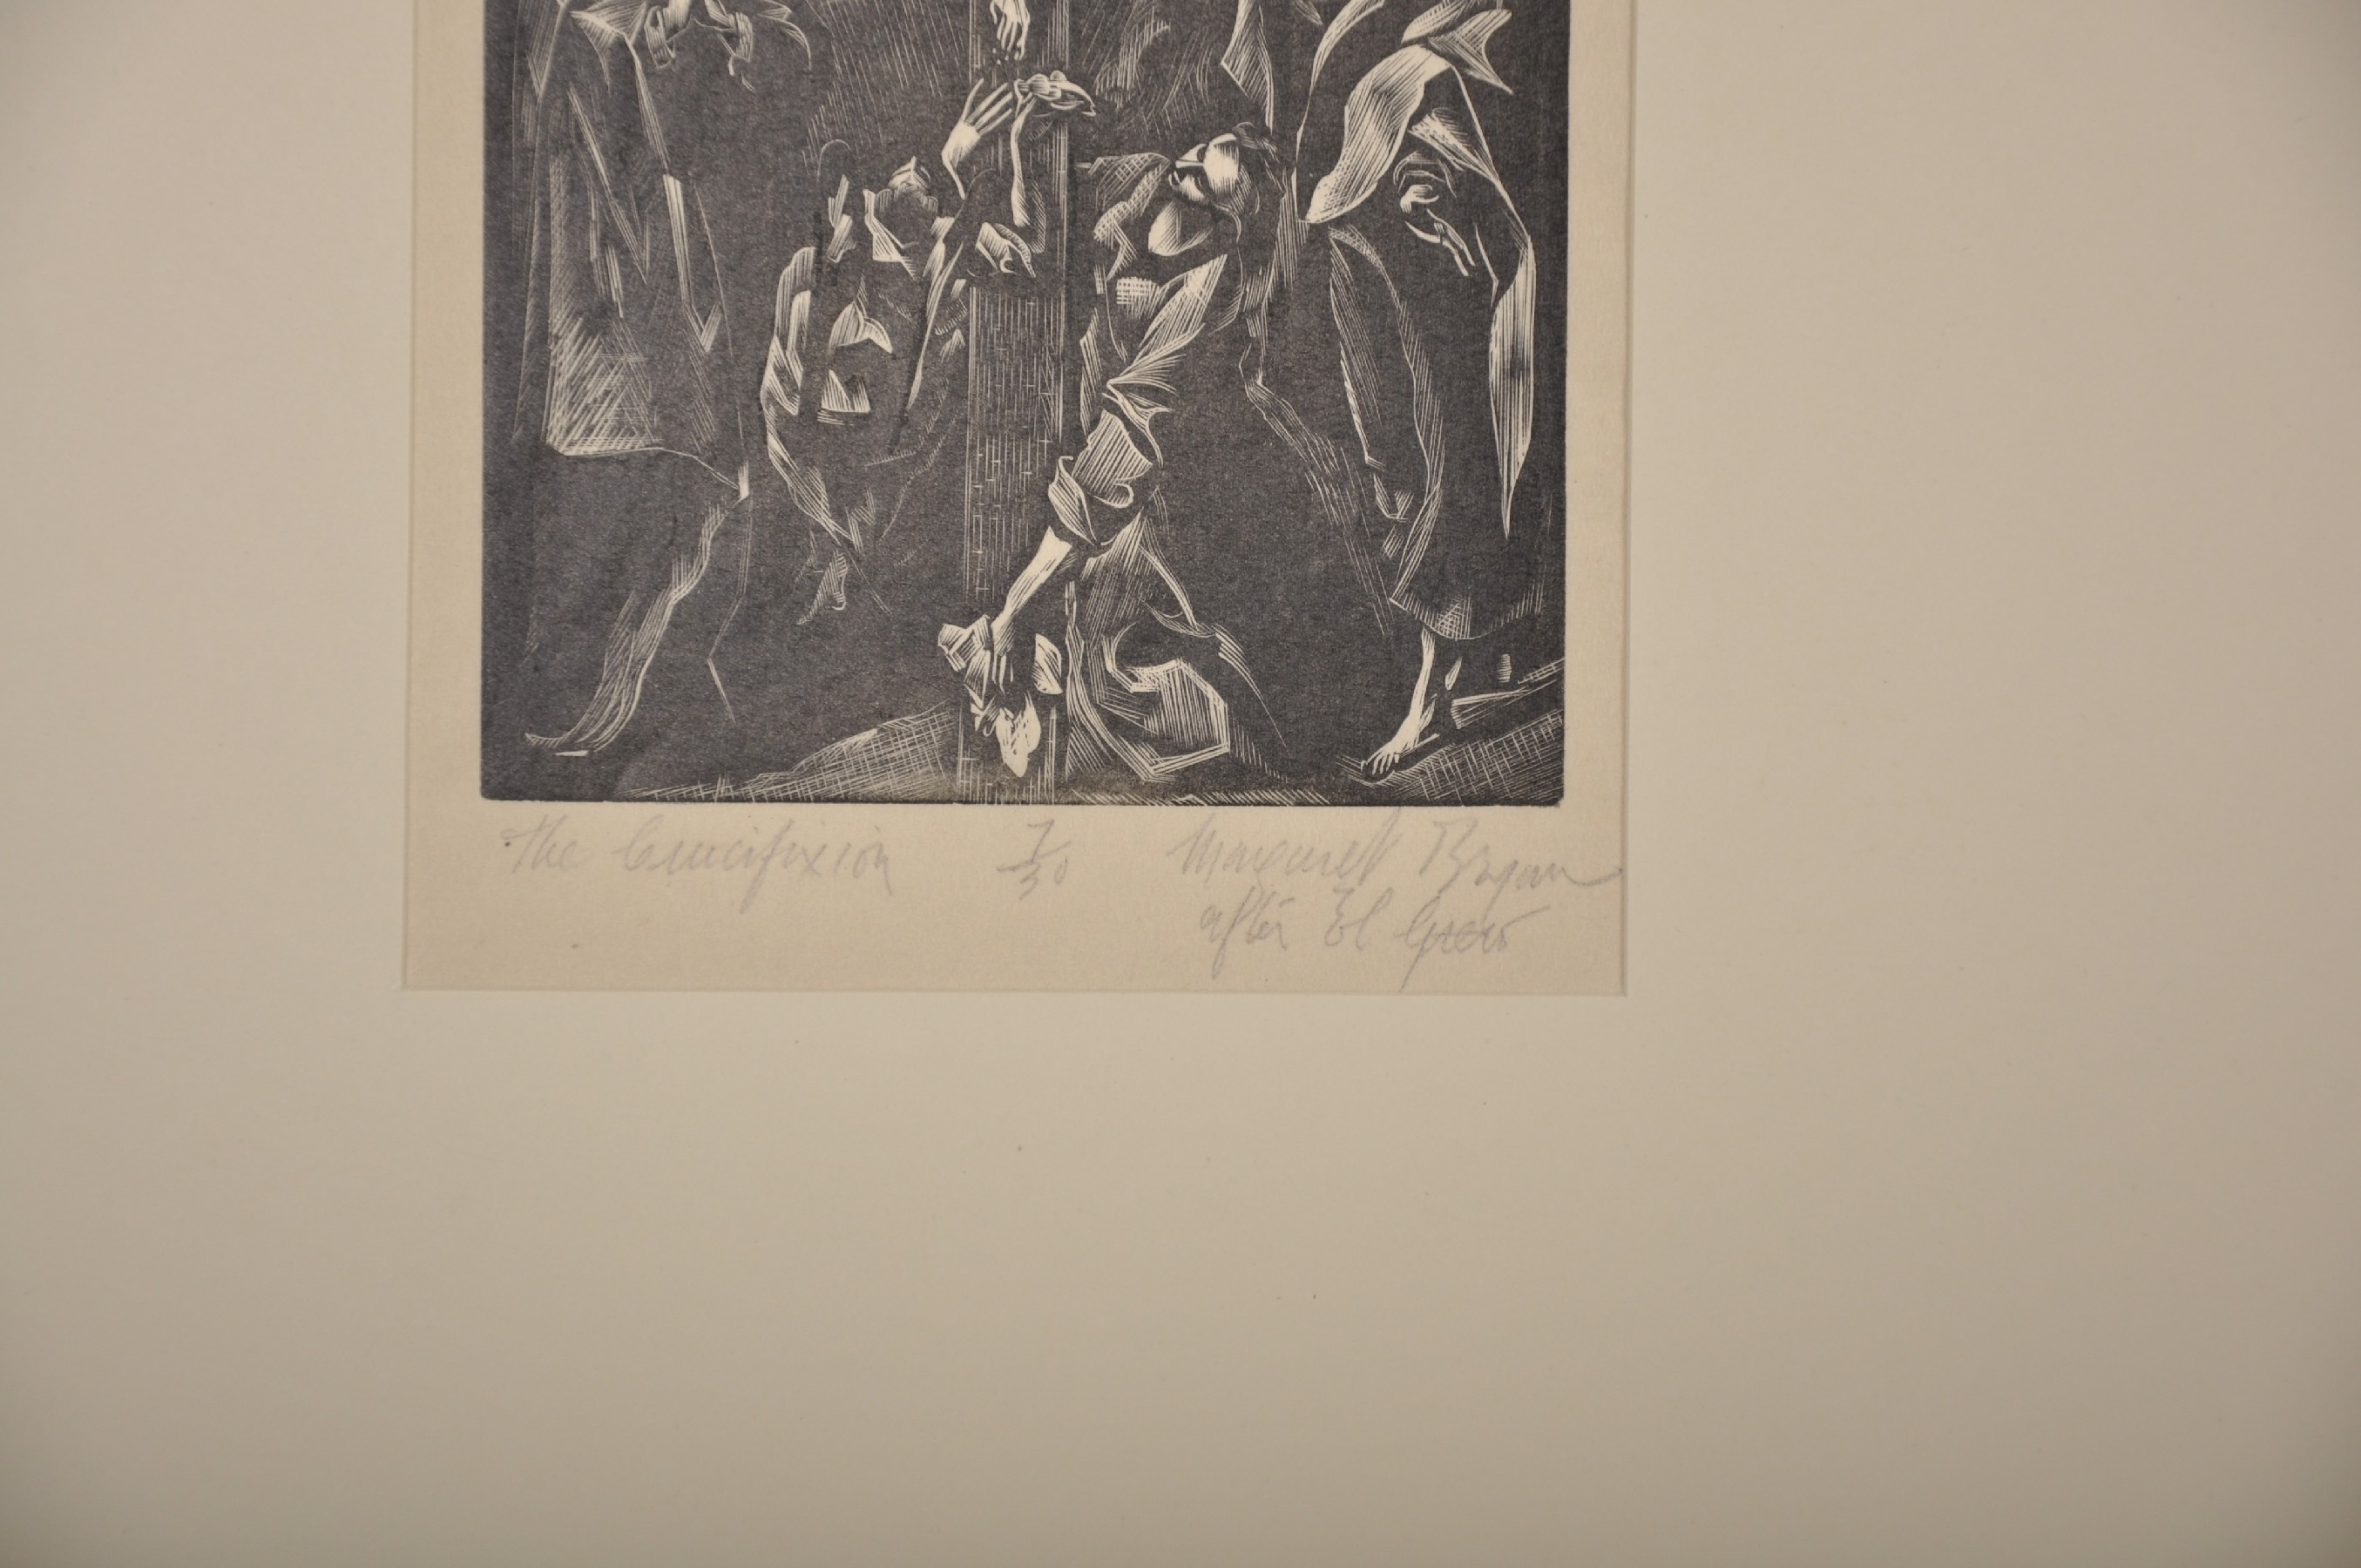 D. Margaret Bryan (19th - 20th Century) British. 'The Crucifixion', after El Greco, Woodcut, Signed, - Image 3 of 3